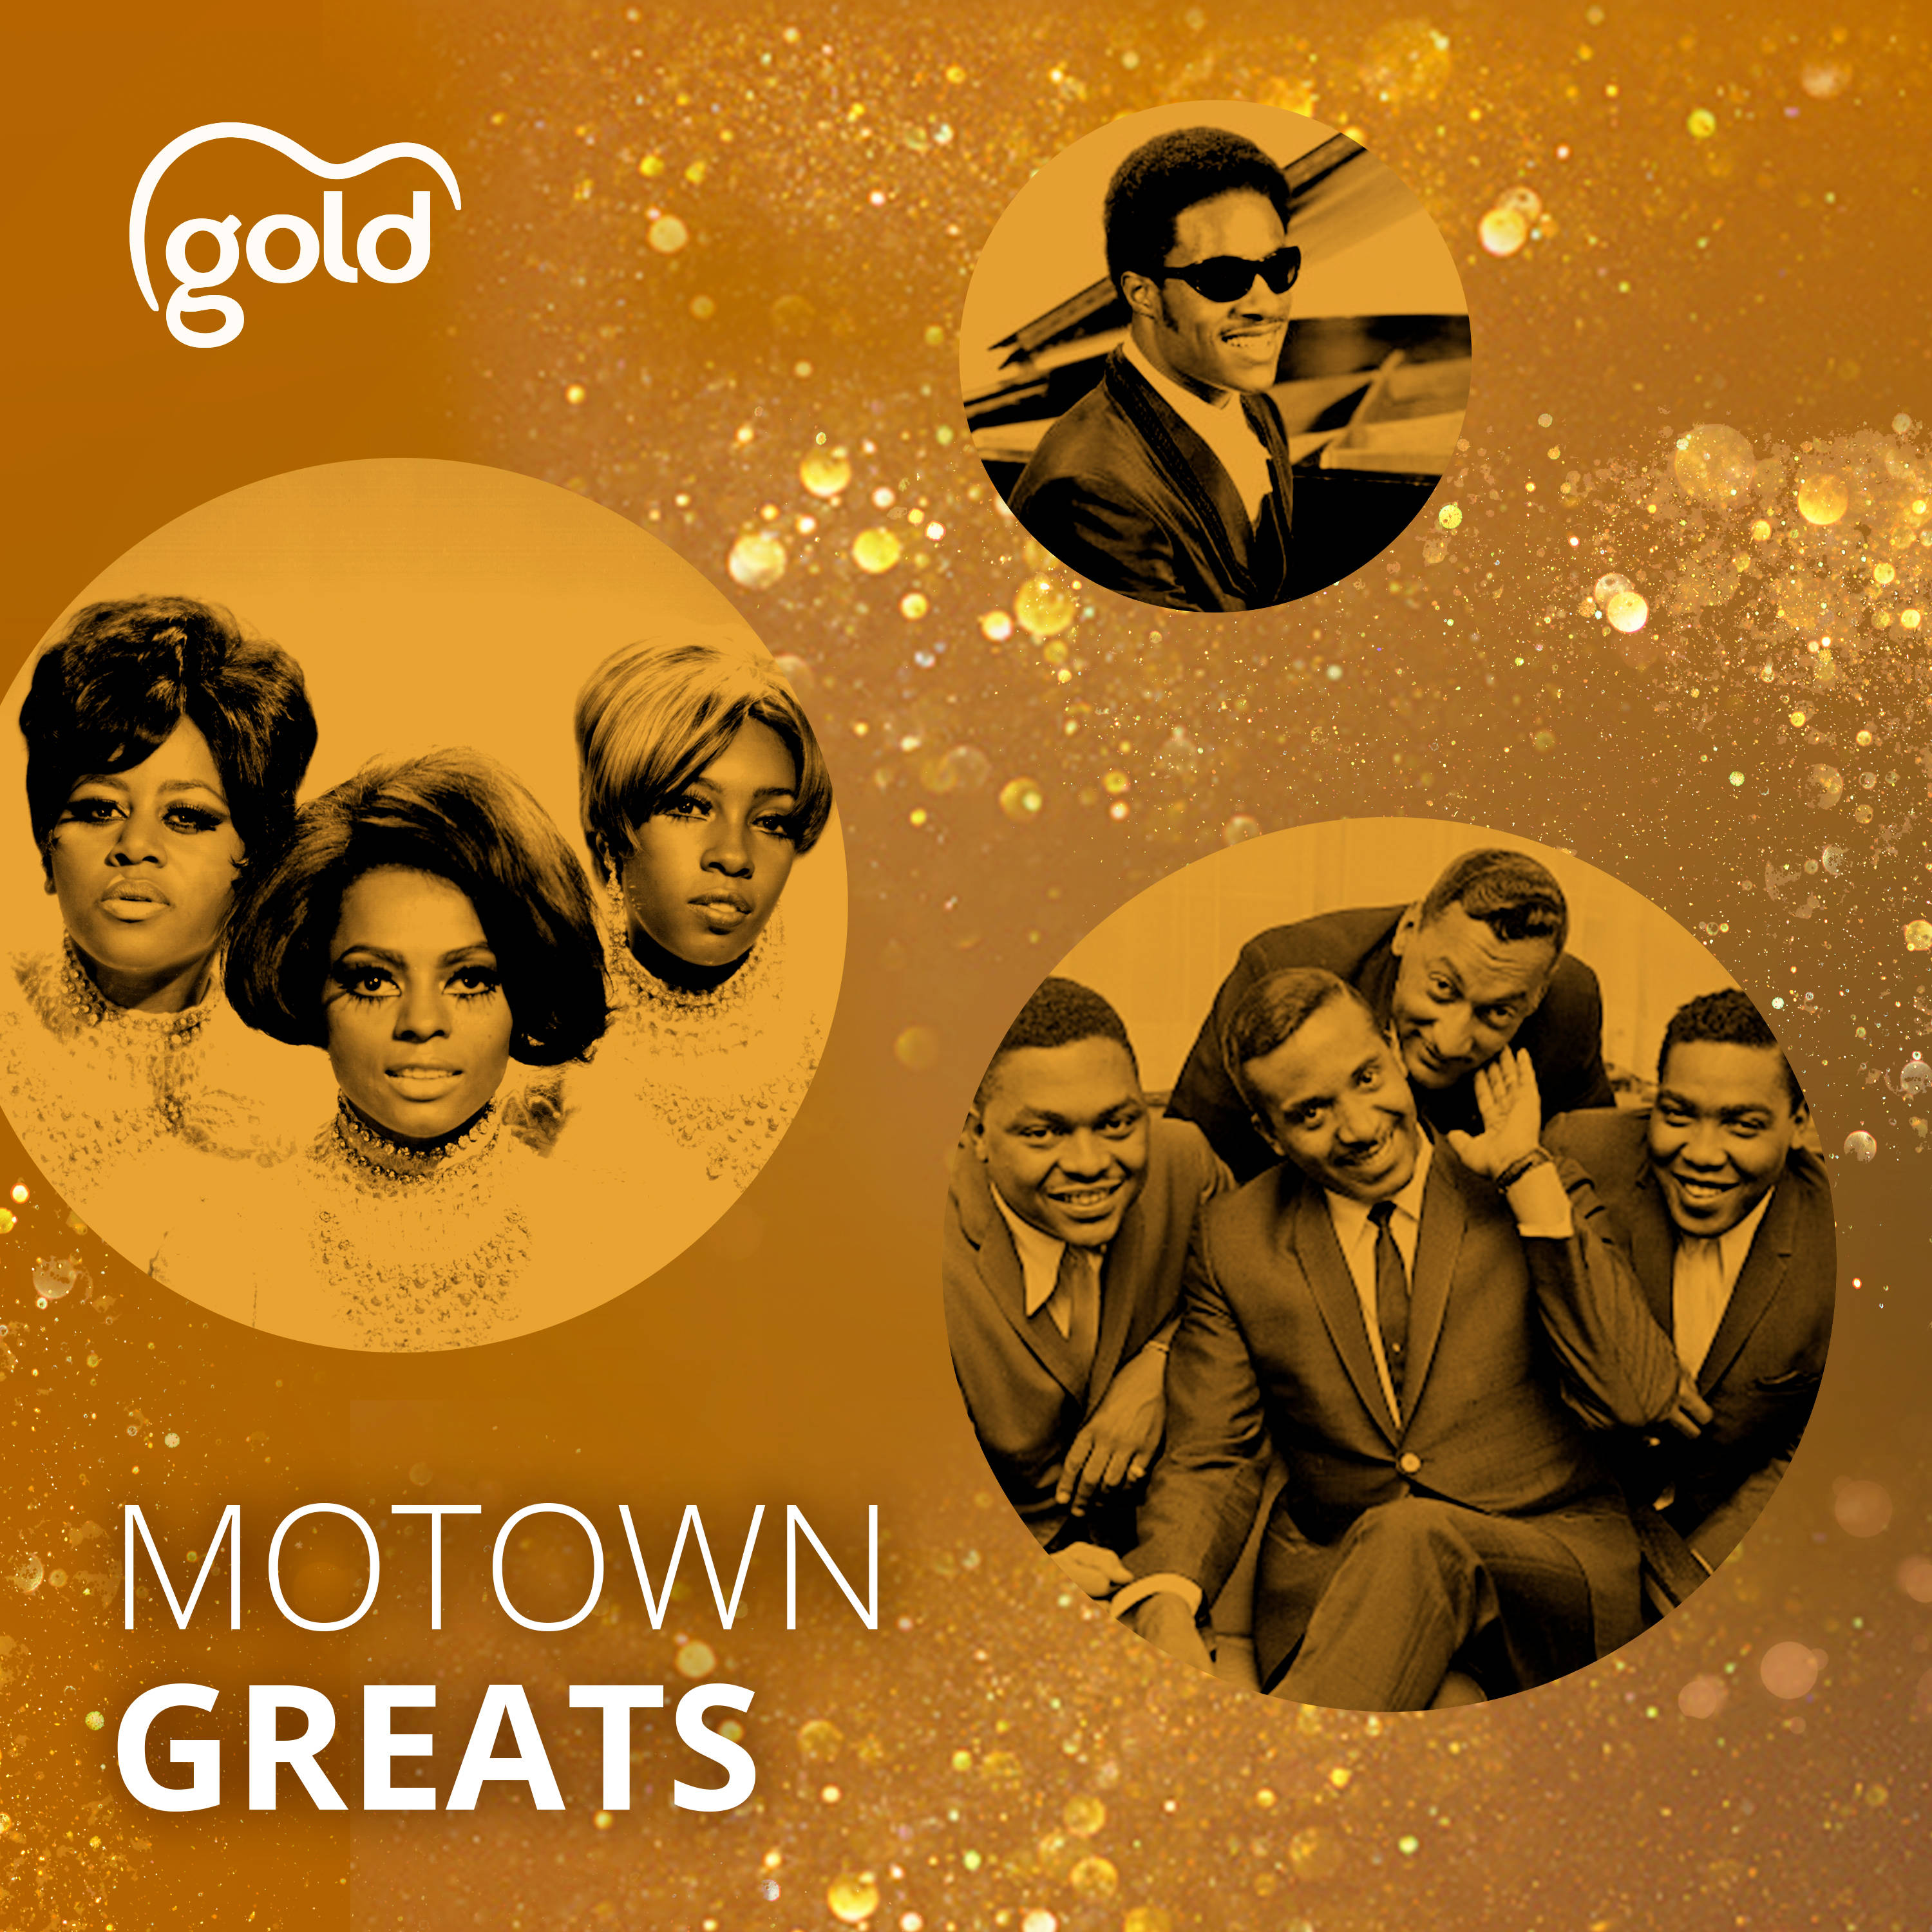 Gold's Motown Greats image